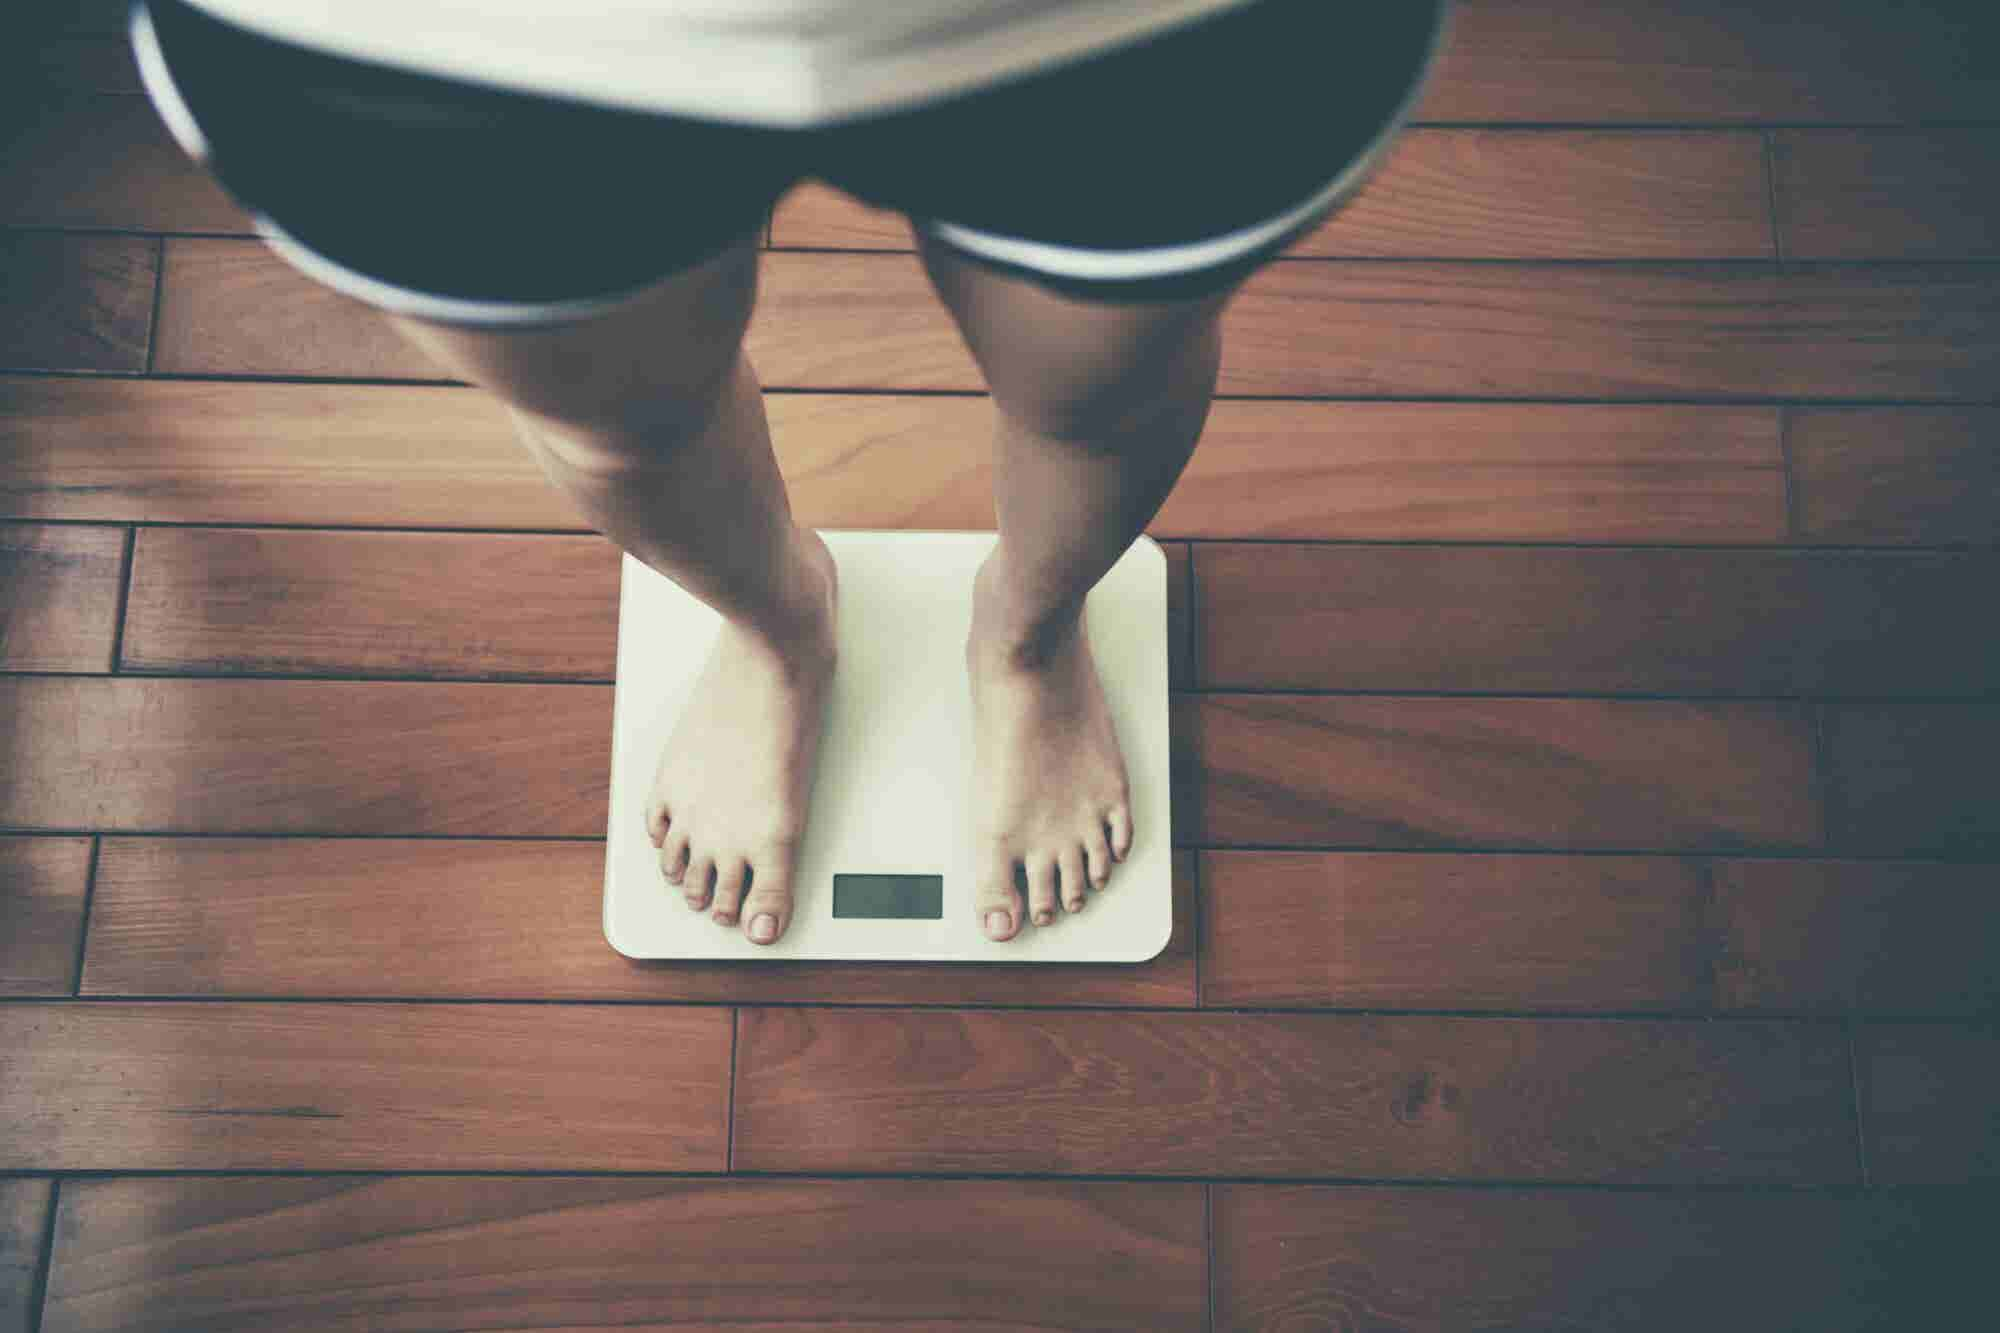 New Study Finds People Who Use Marijuana Weigh Less Than Those Who Don't